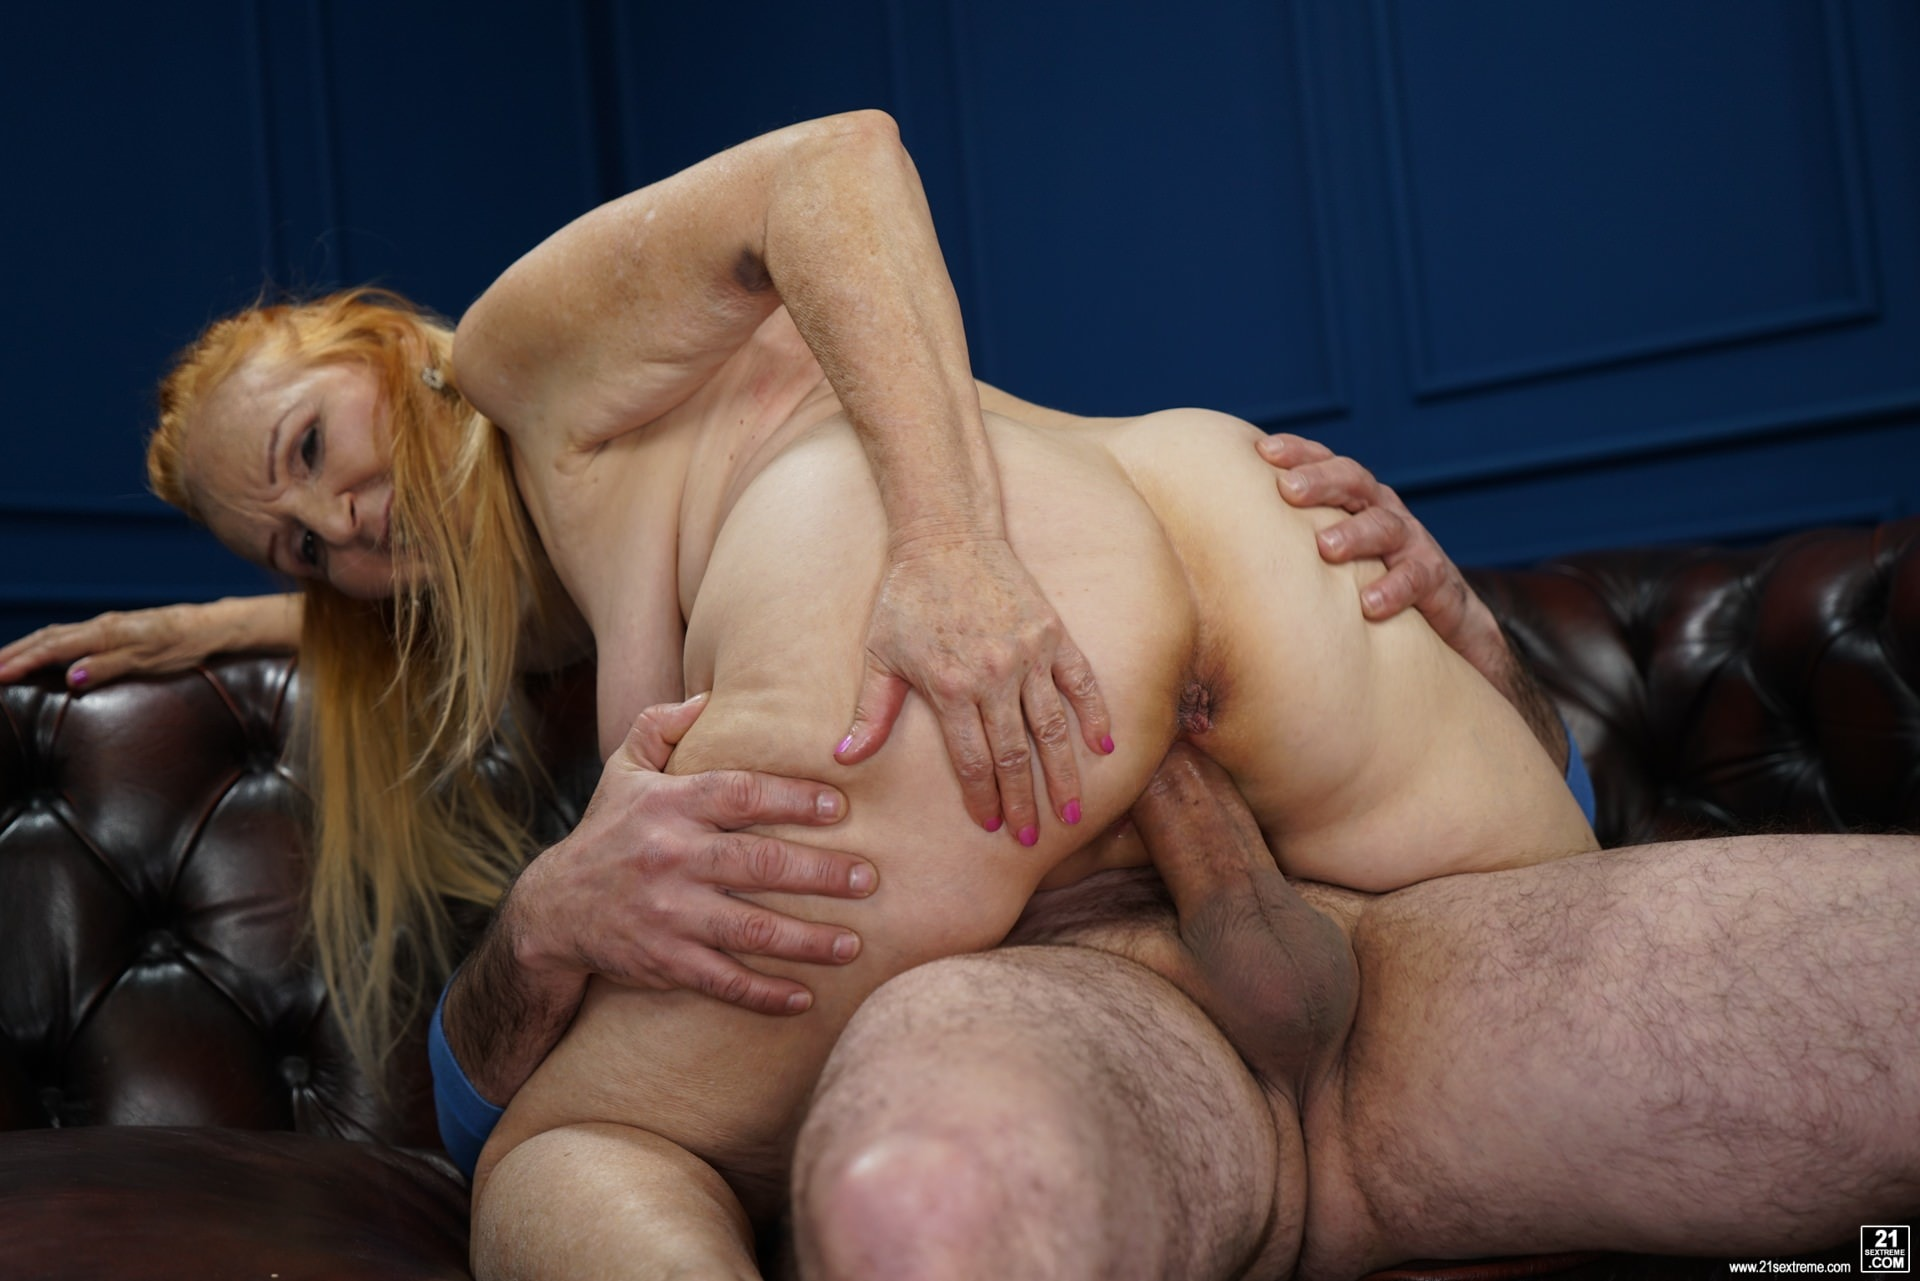 21Sextury 'Happiness Online' starring Marianne (Photo 91)